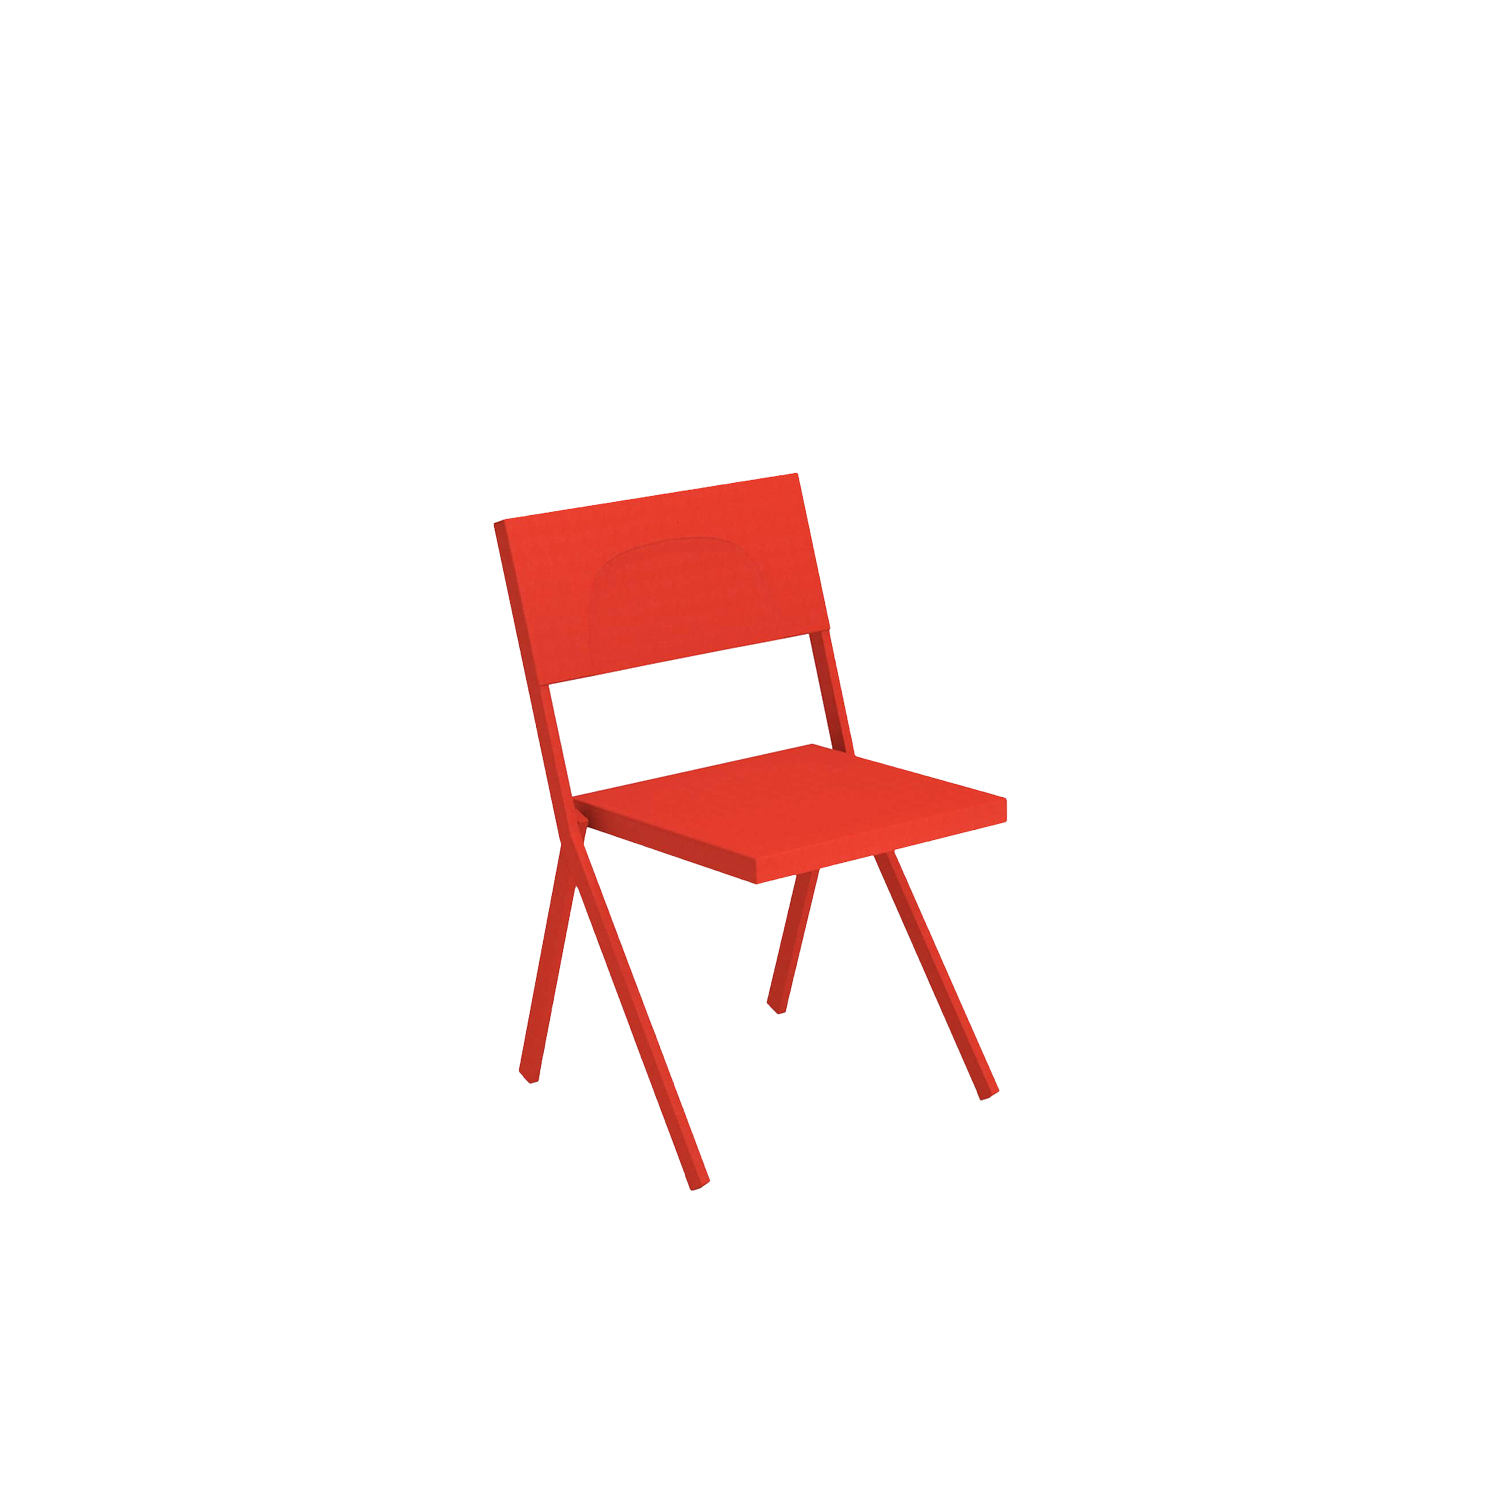 Mia Chair - Set of 4 - Created by the visionary Jean Nouvel, this is a collection that looks to the future to establish itself as an icon of urban furniture. Mia, with its minimal design and formal shapes, can bring character to any setting, both outdoor and indoor. Table and chairs are easily placed, even in the smallest of spaces, bringing an immediate and unmistakable charm to their surroundings. Versatile and iconic Mia furniture offers the perfect blend of design, functionality and strength for simple, sophisticated spaces.  | Matter of Stuff